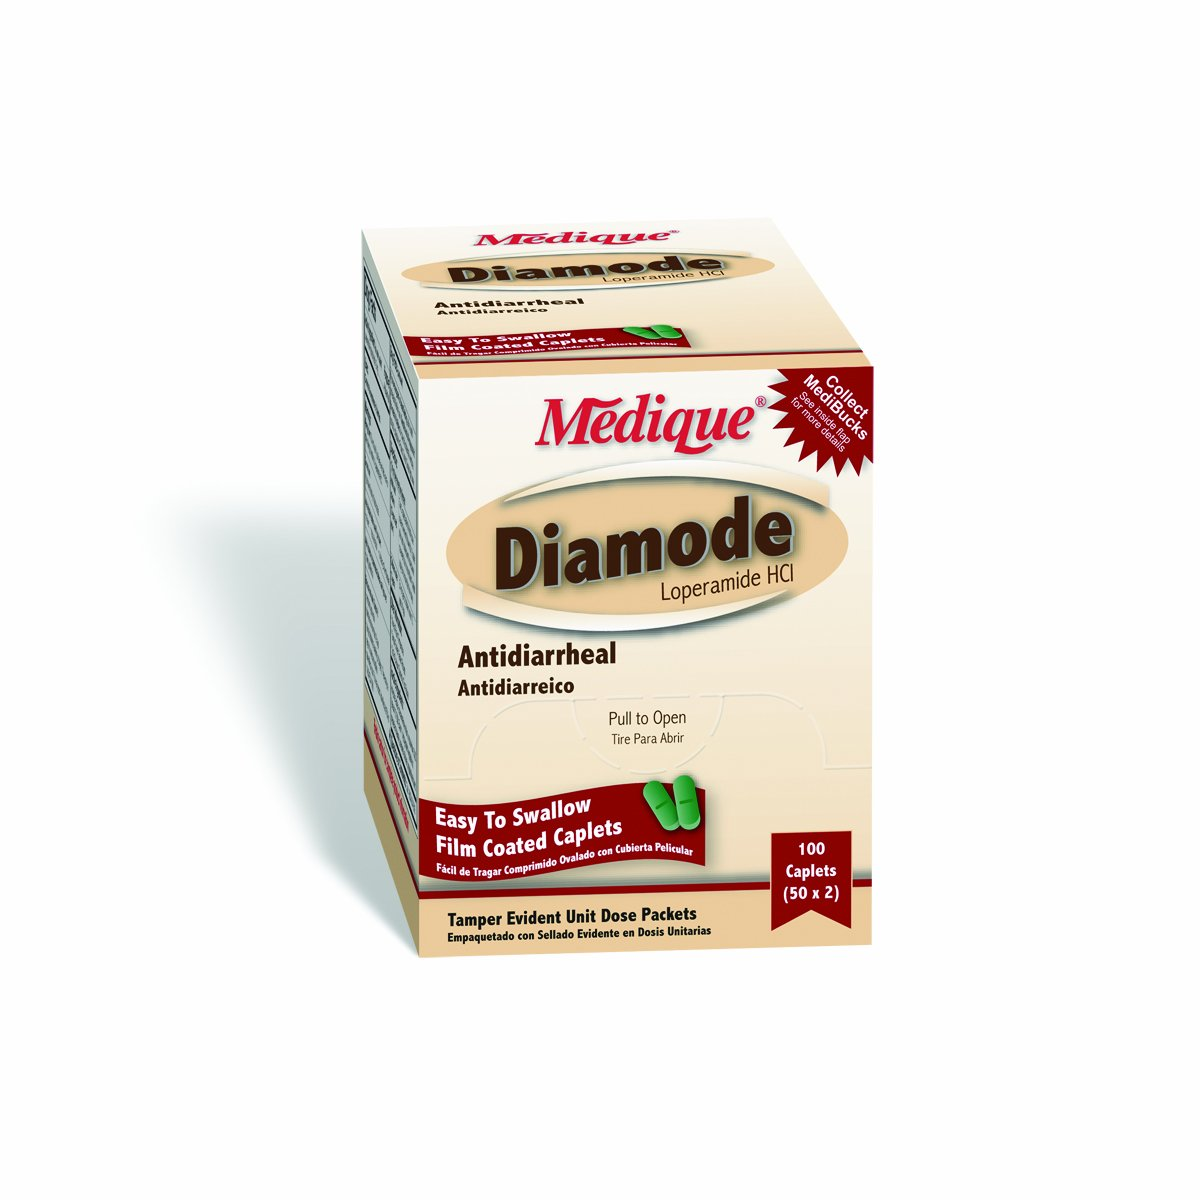 Medique Products 20033 Diamode, 100-Packets of 2 by Medique